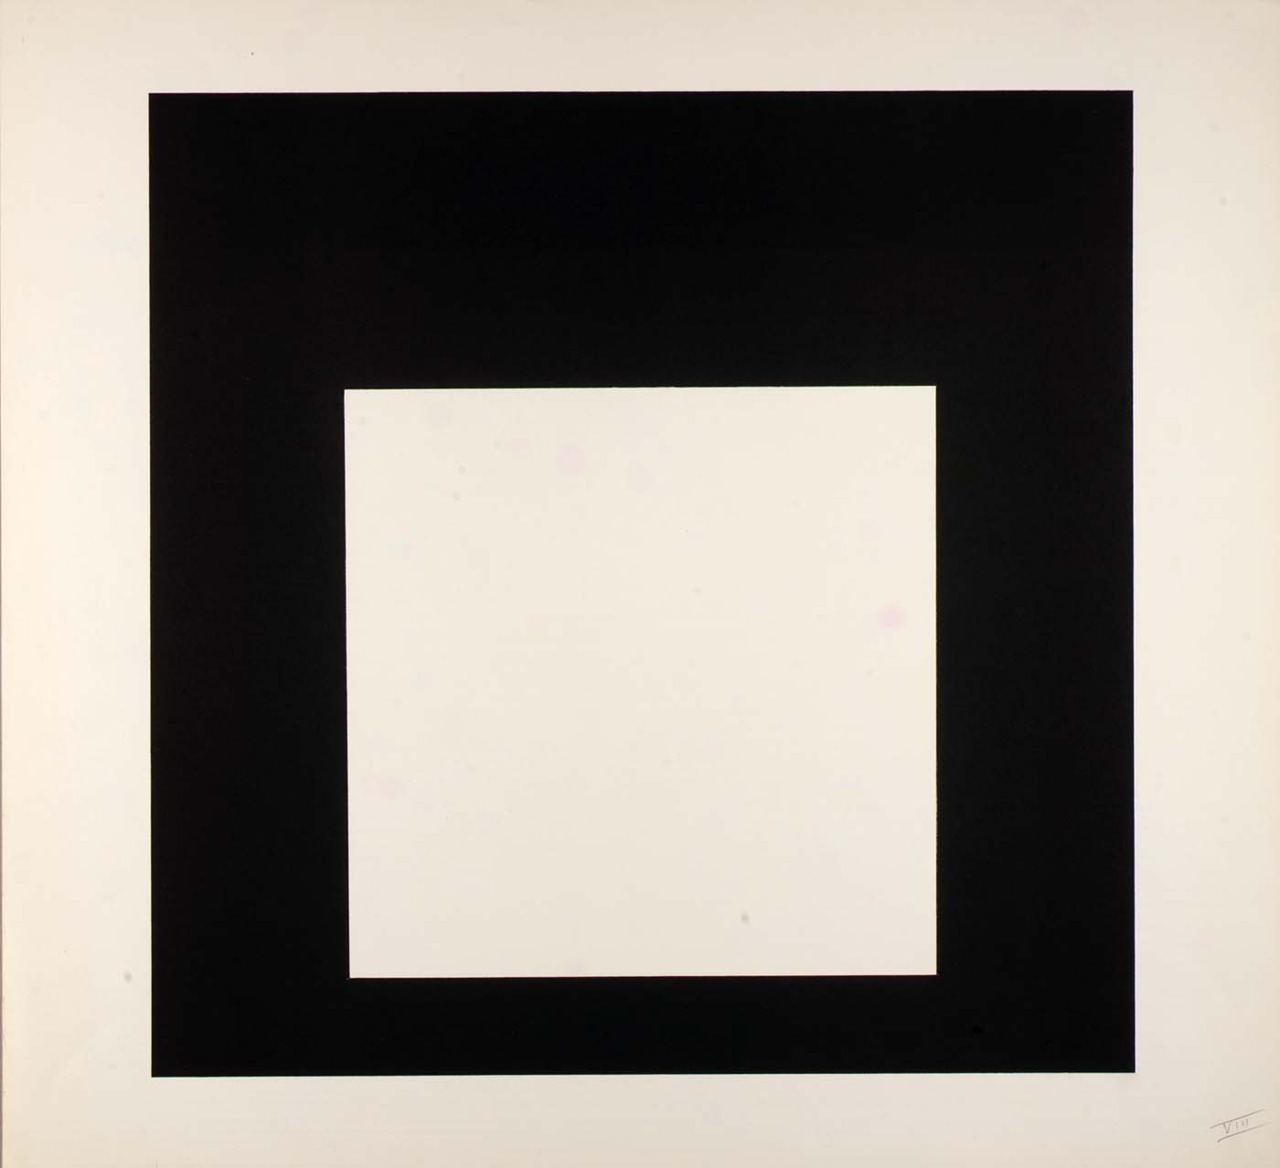 Day and Night VIII (Day and Night, suite) 1963   Josef Albers    Born: 															Bottrop, Germany 1888   Died: 															New Haven, Connecticut 1976  color lithograph on paper image: 15 3/4 x 15 3/4 in. (40.0 x 40.0 cm) Smithsonian American Art Museum